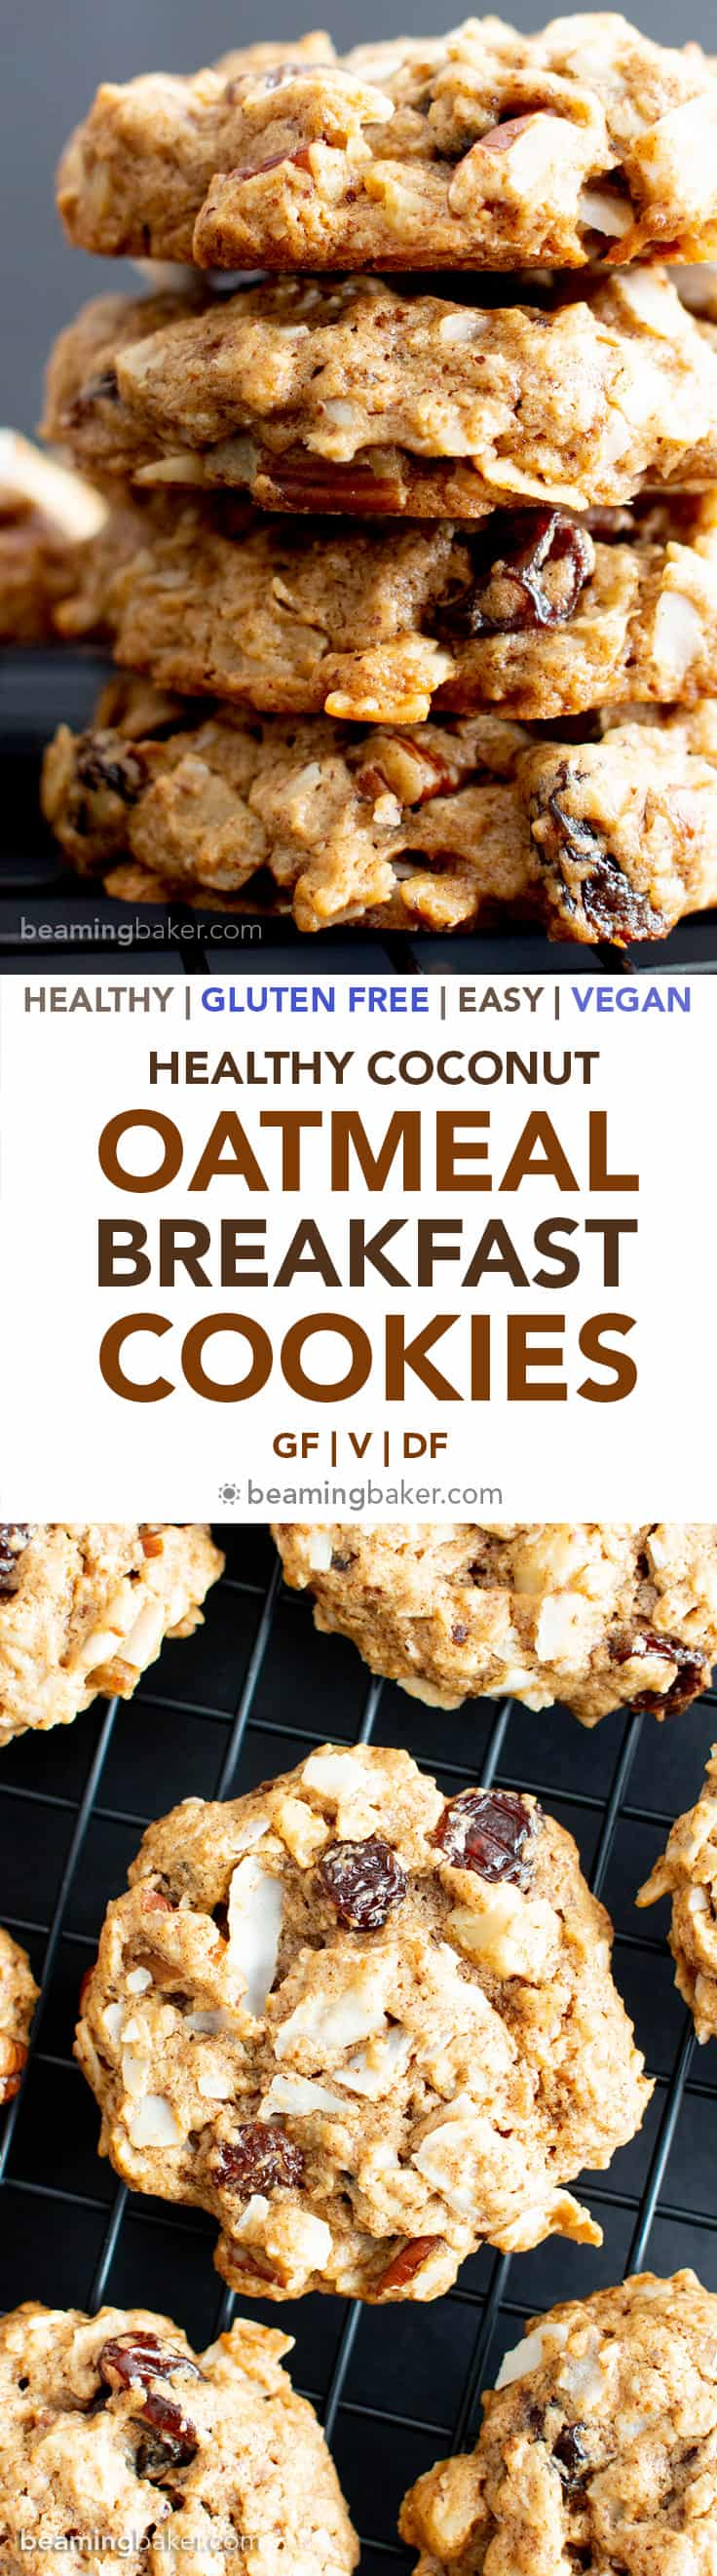 Healthy Coconut Oatmeal Breakfast Cookies (V, GF): this easy breakfast cookies recipe is chewy & crispy! It's the best healthy homemade breakfast cookies—vegan, gluten-free, dairy-free! #Breakfast #Vegan #GlutenFree #DairyFree #Cookies | Recipe at BeamingBaker.com